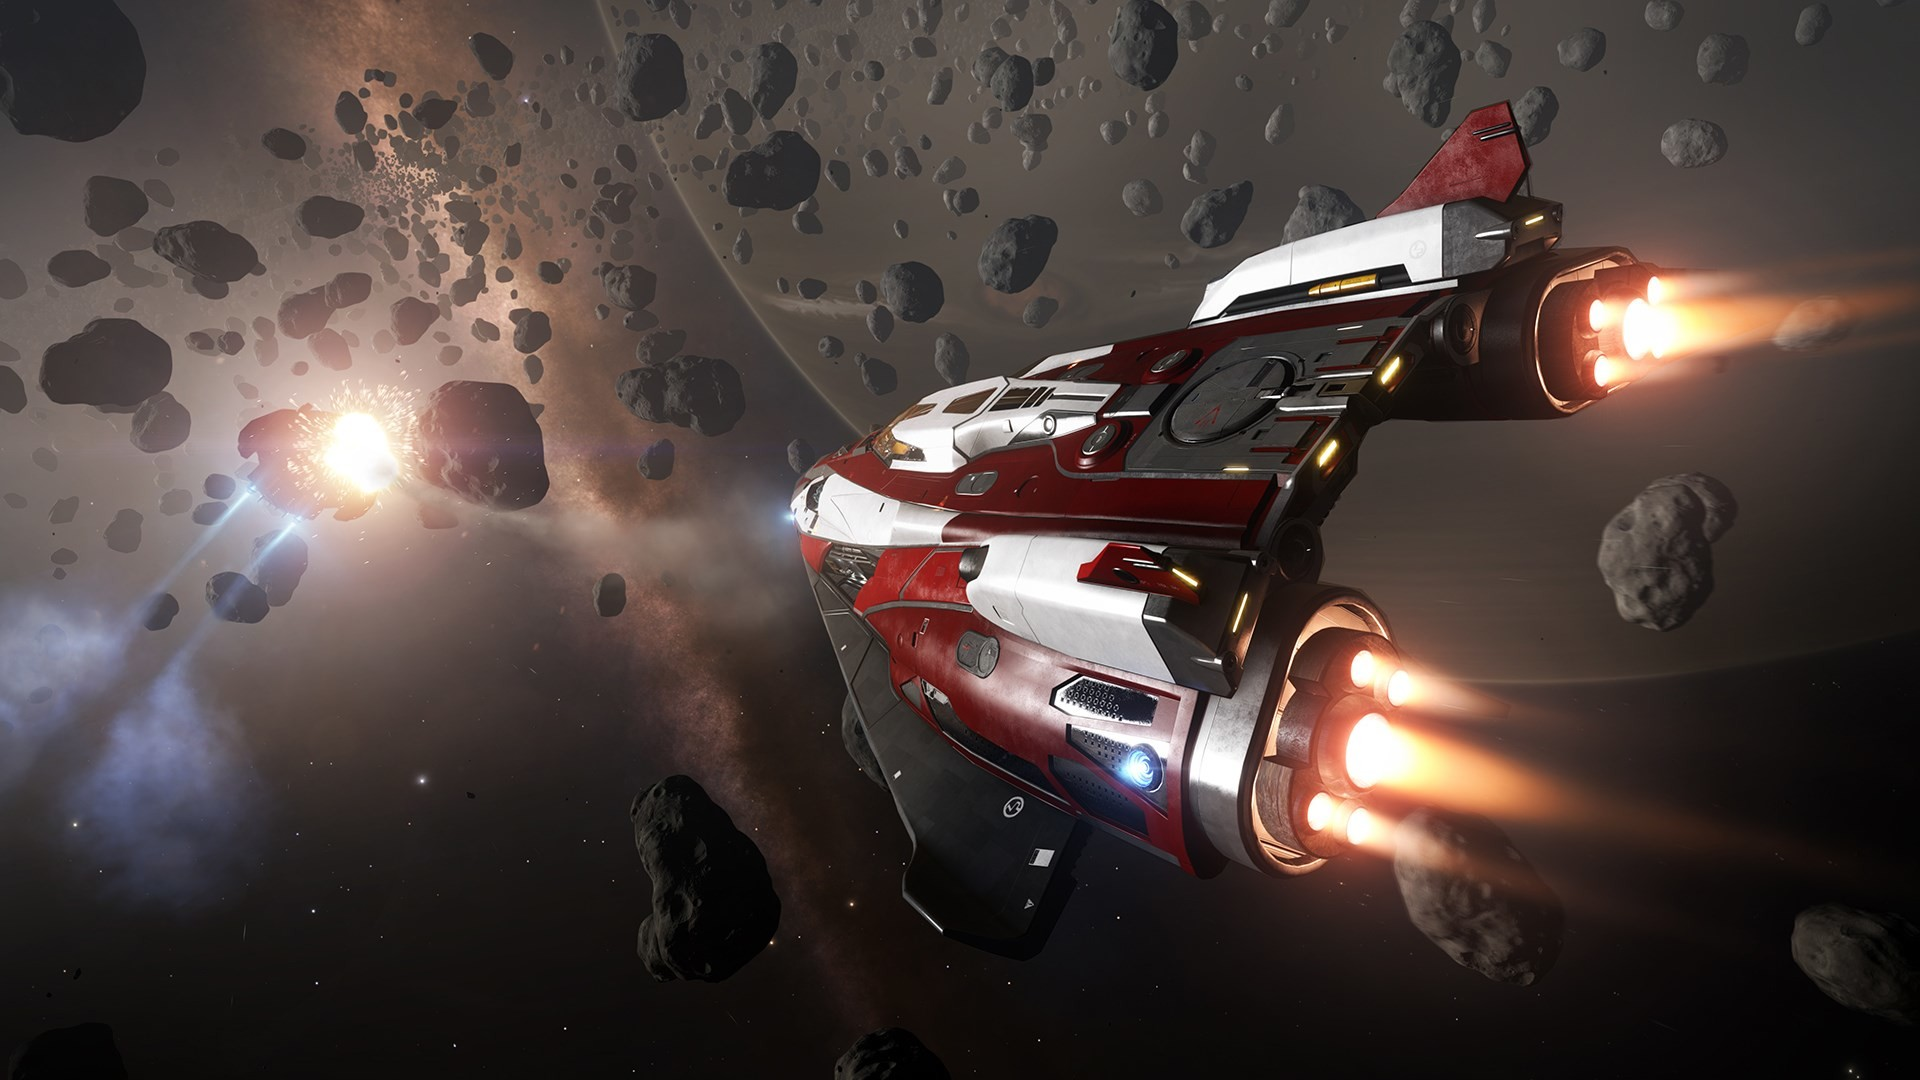 1920x1080 Elite Dangerous in VR on our $13,000 gaming rig is pure dogfighting bliss |  PC Gamer